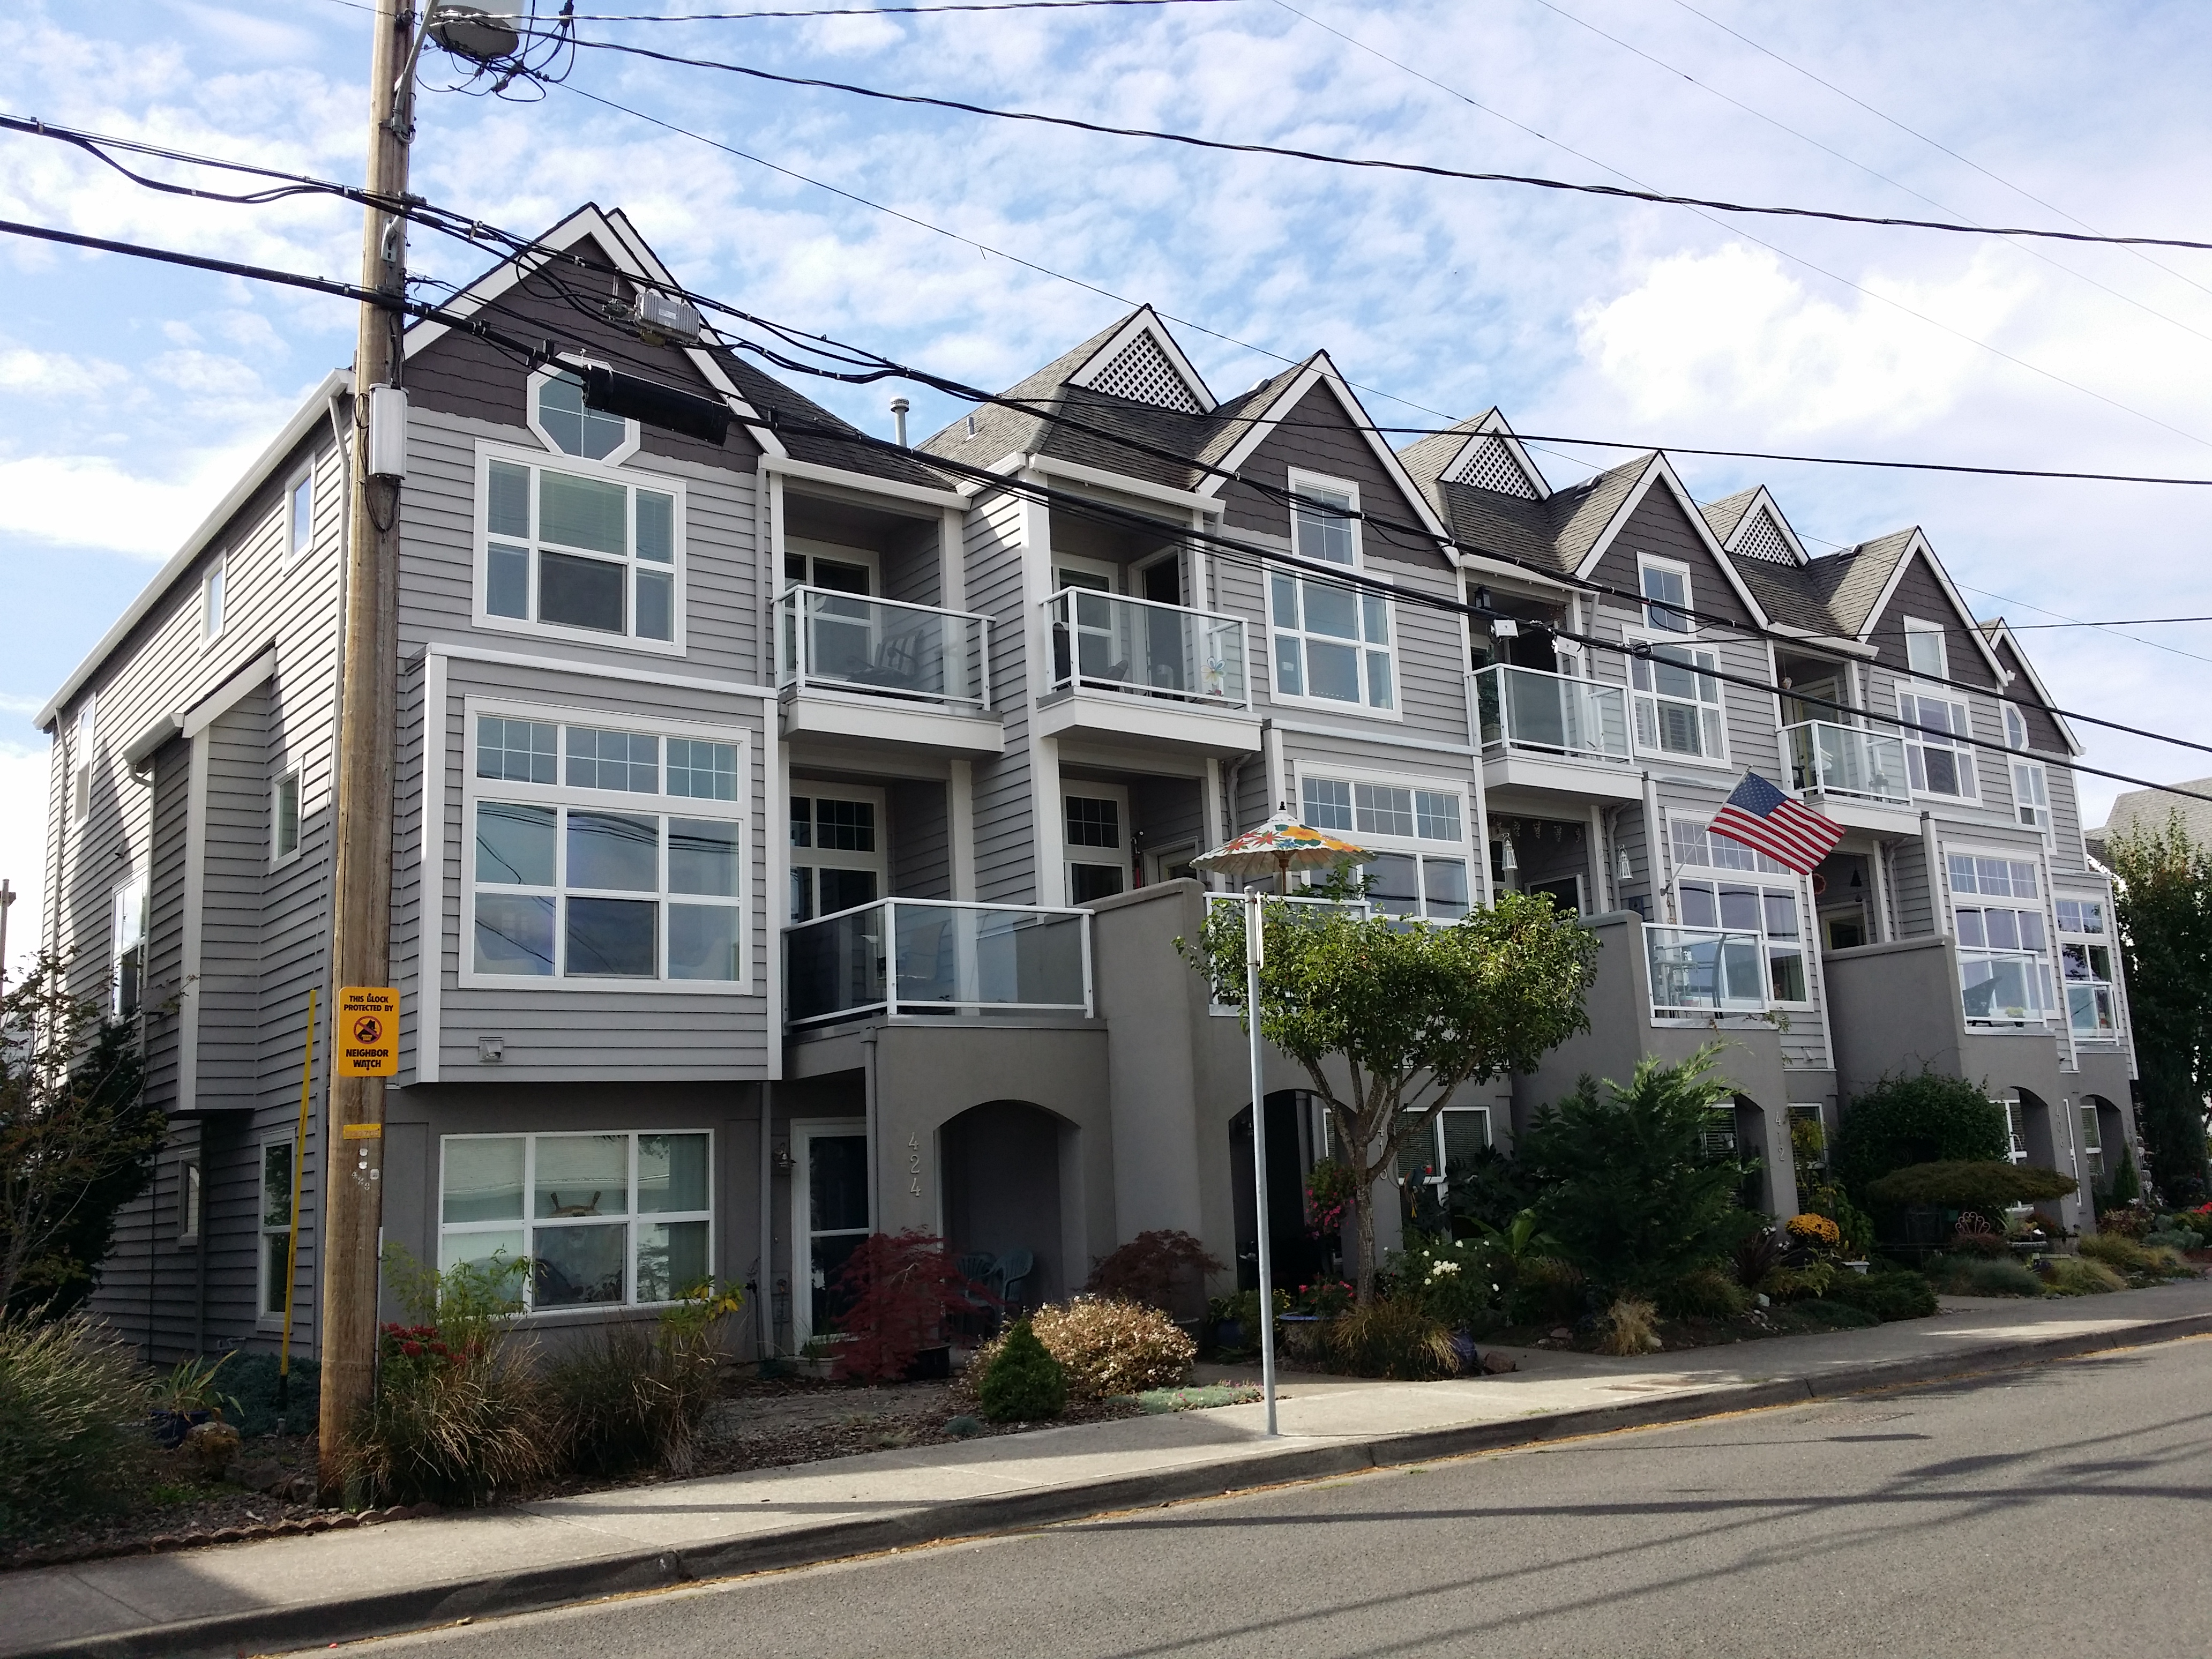 Exterior painters cascade painting and restoration portland or cascade painting restoration - Exterior painting portland oregon decoration ...